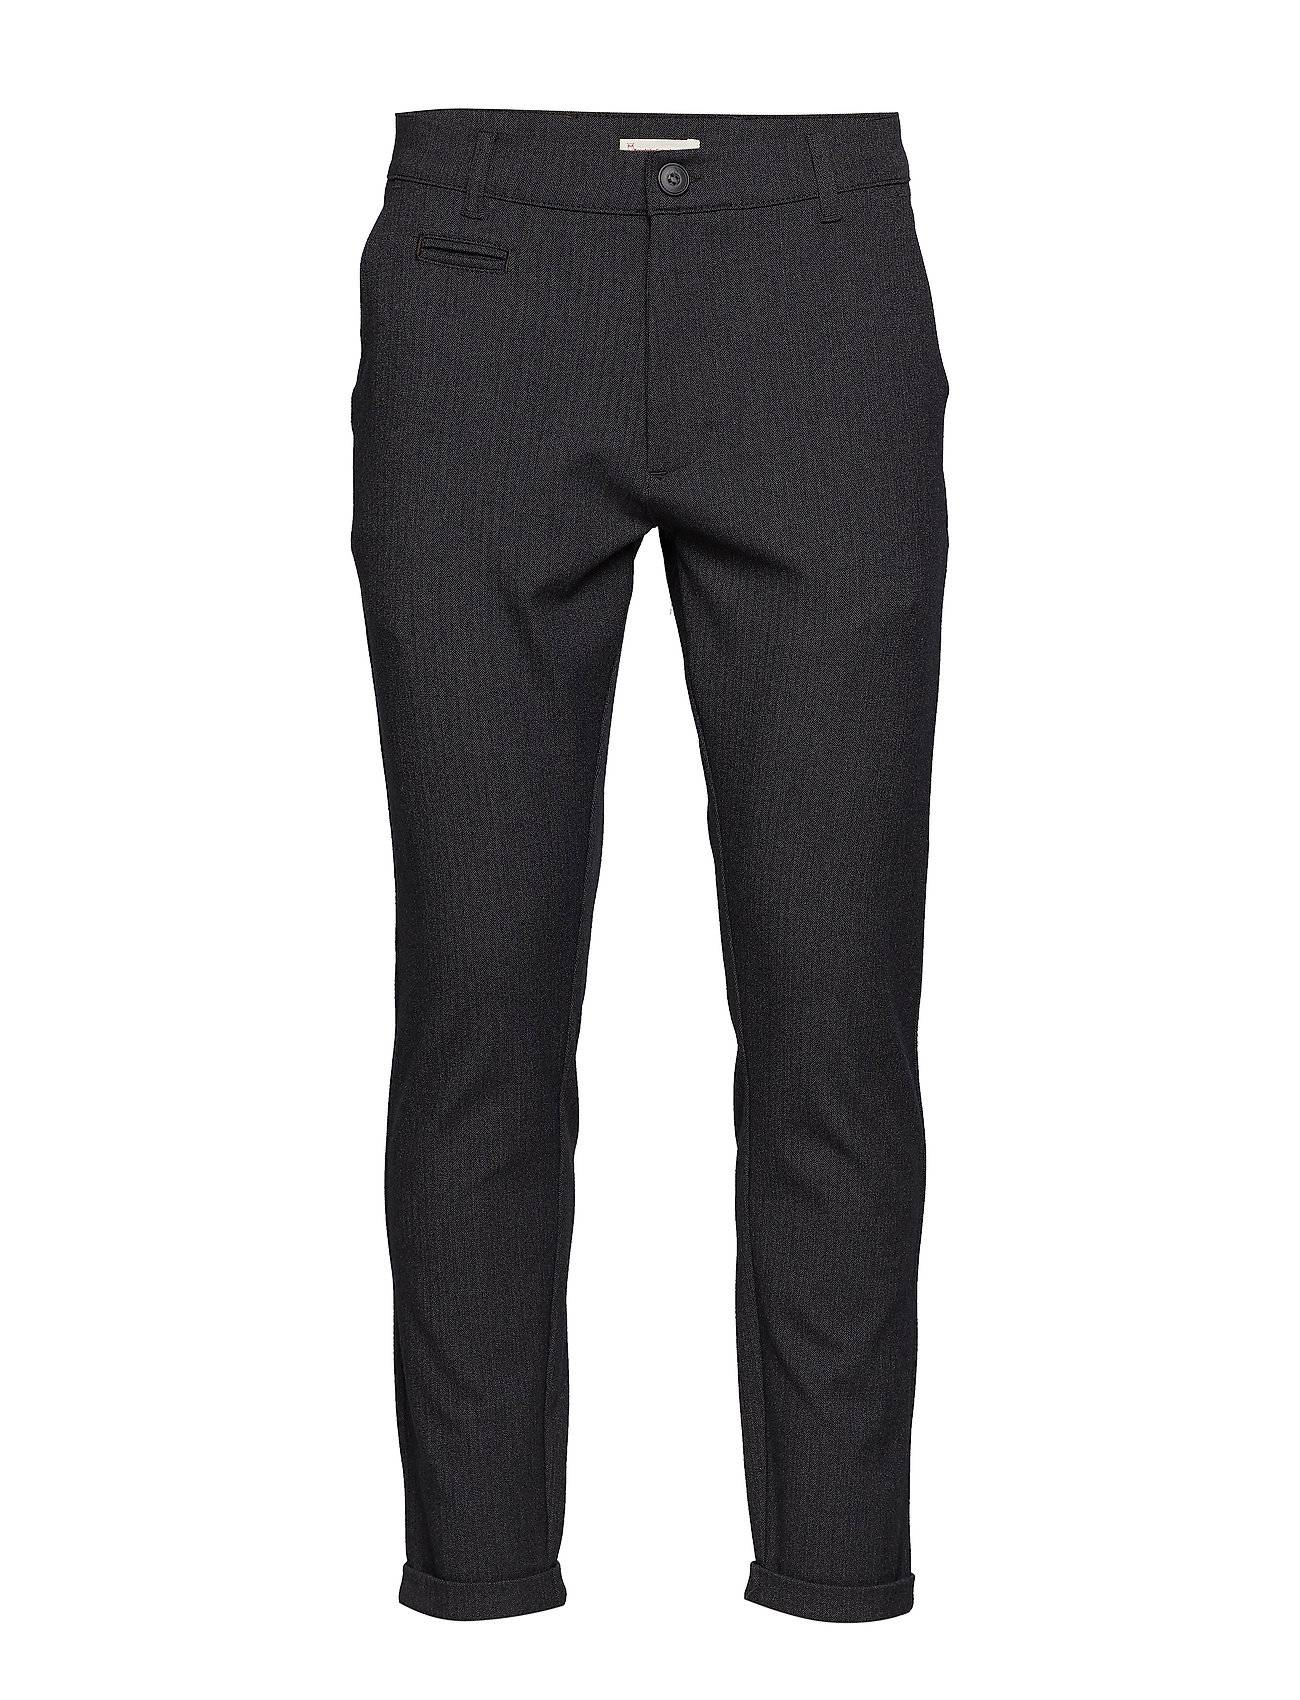 Knowledge Cotton Apparel Fishbone Structured Chino With Turn